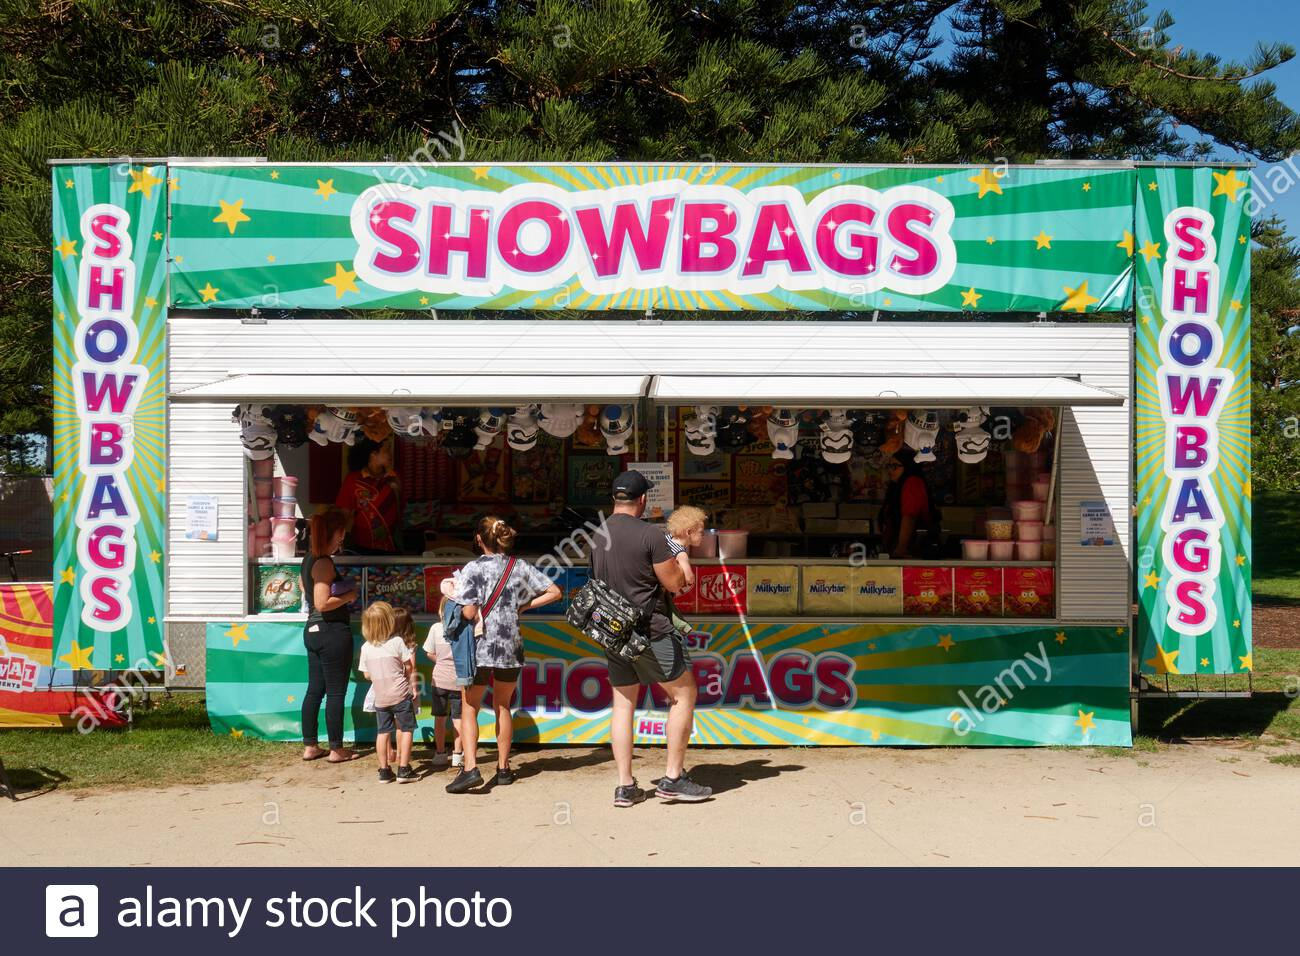 a-stall-selling-showbags-at-the-funmantle-april-school-holidays-event-for-children-at-the-esplanade-in-fremantle-western-australia-2FK4MA4.jpg